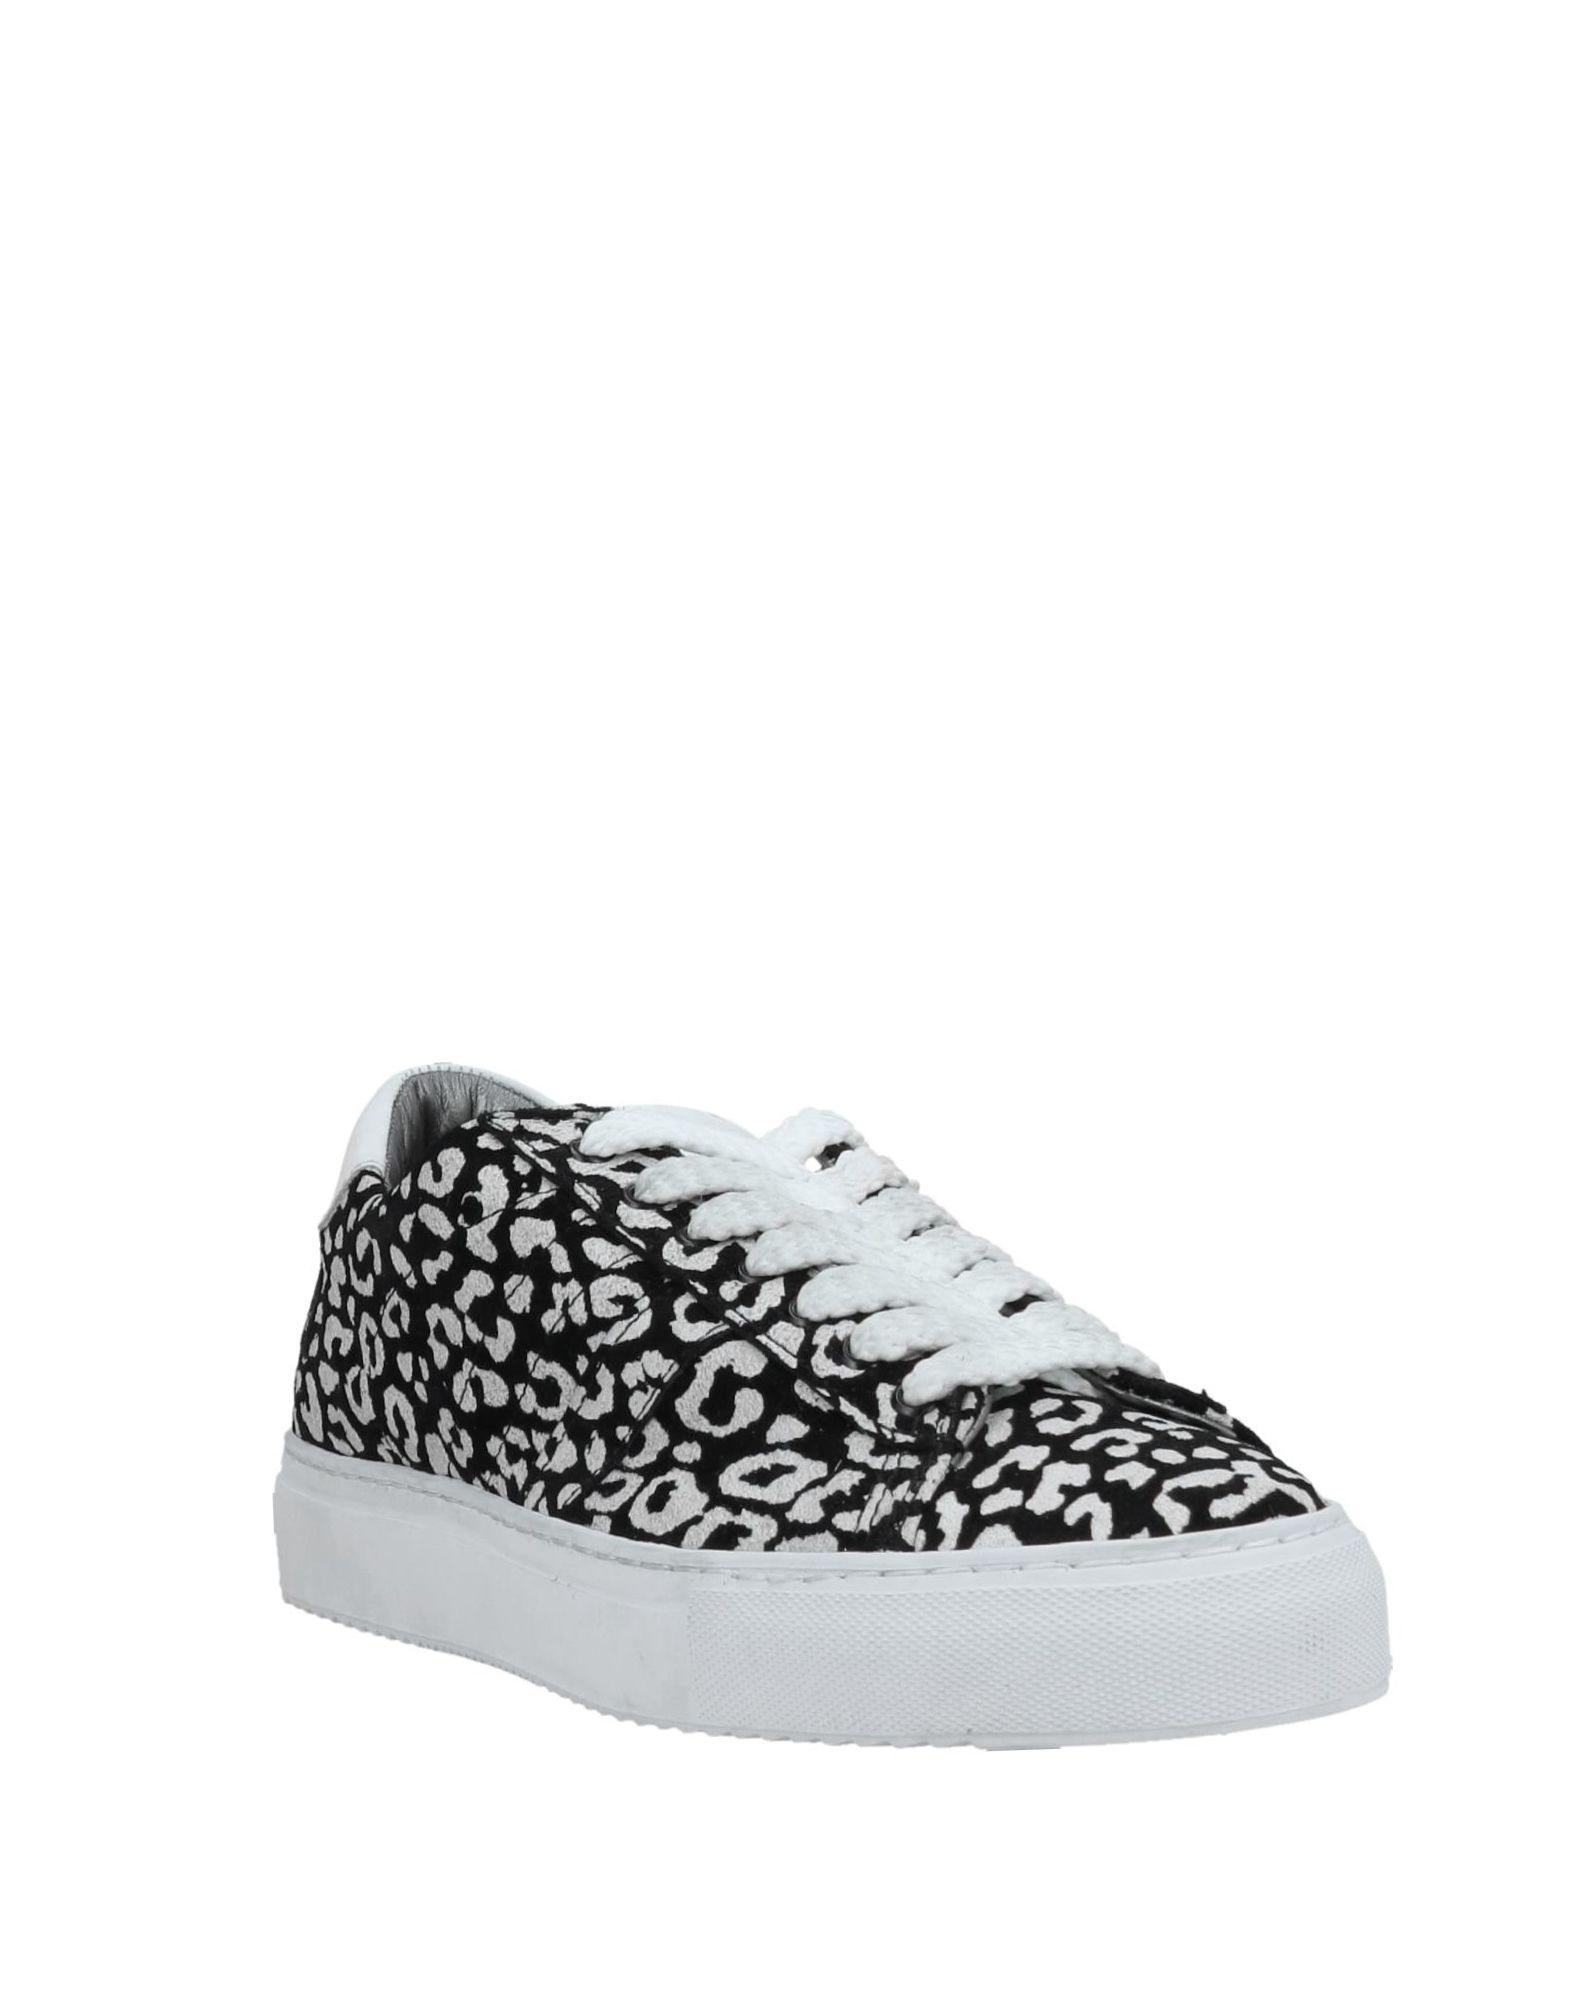 D.A.T.E. Sneakers - - - Men D.A.T.E. Sneakers online on  Canada - 11557141OV ad7186